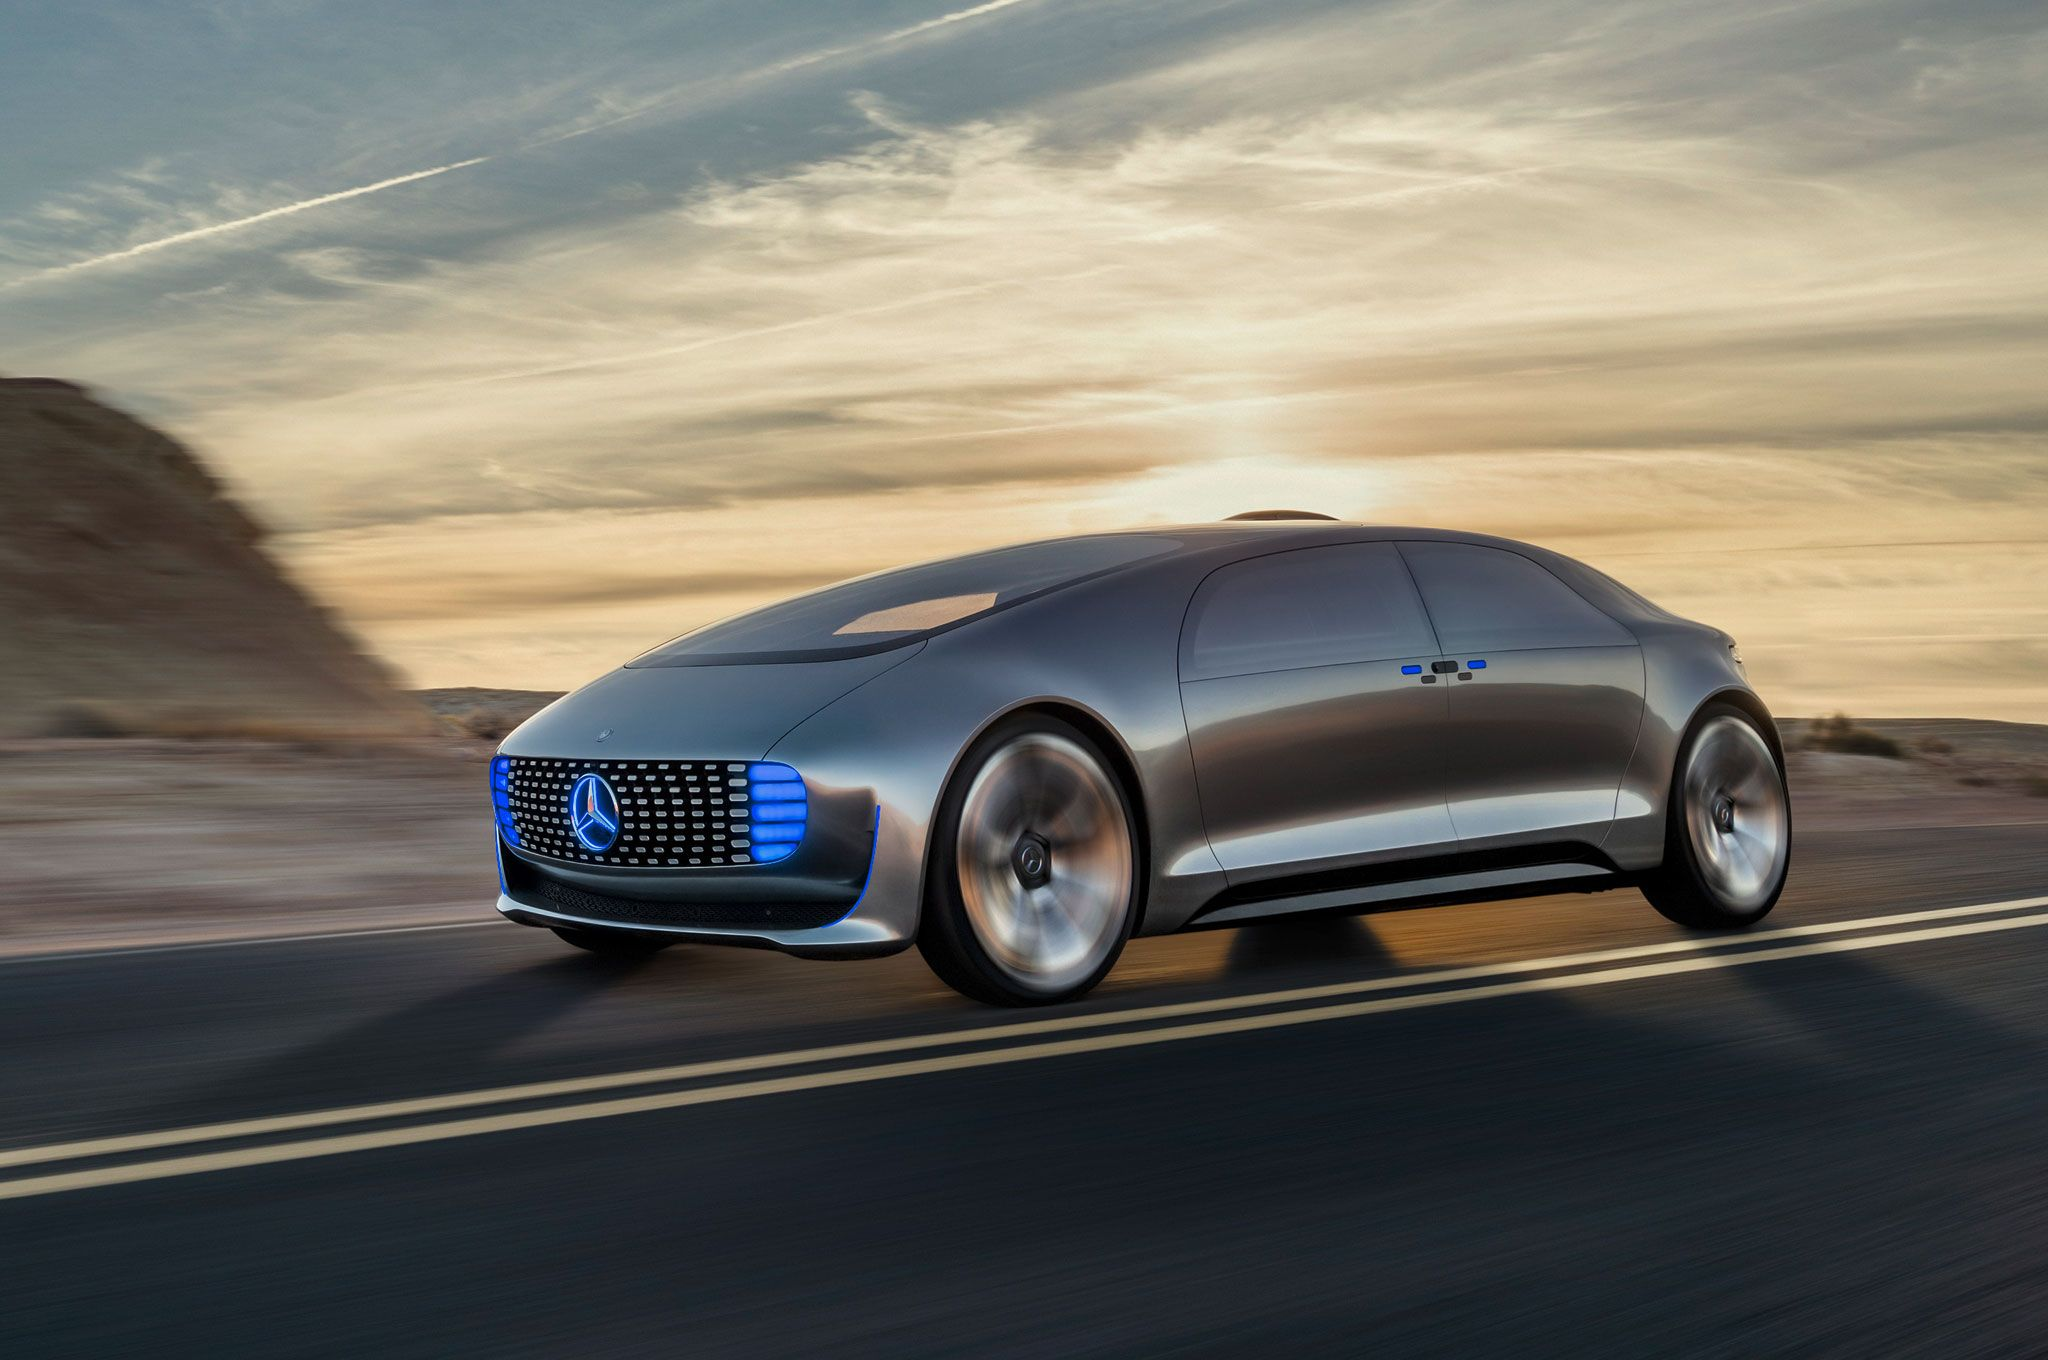 Riding In The Mercedes Benz F 015 Luxury Motion Concept Cars Design